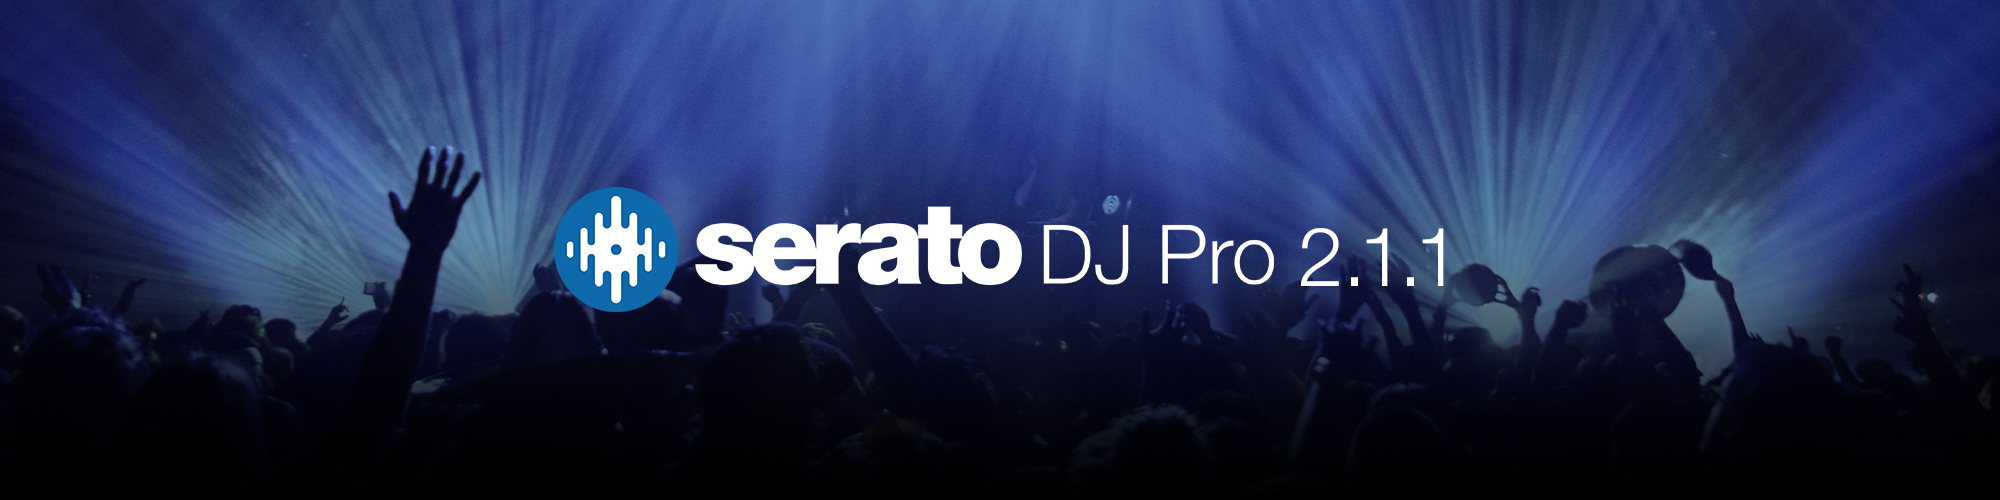 download serato dj intro 1.3